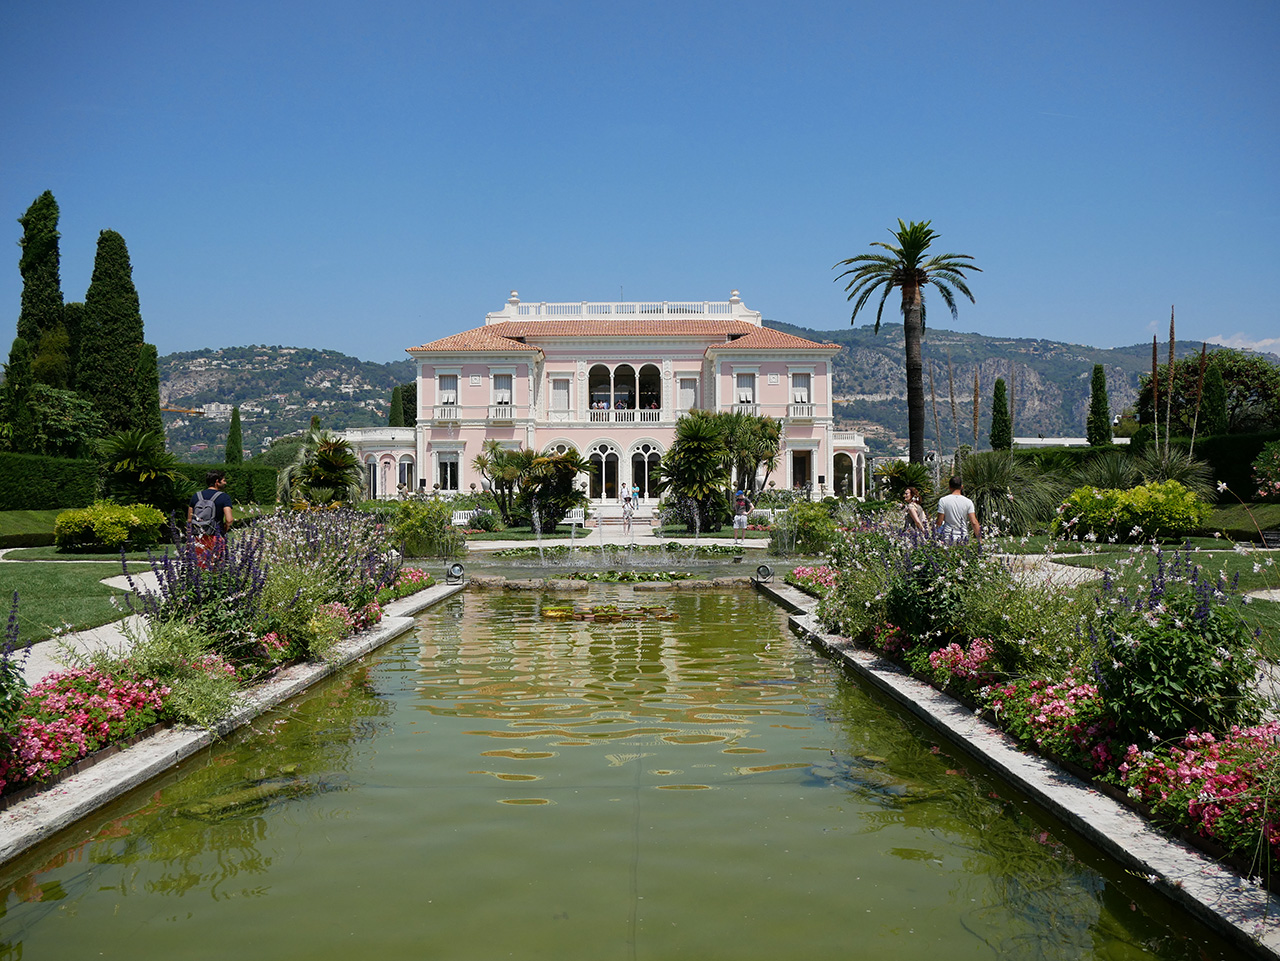 Villa Ephrussi de Rothschild - things to do on the French Riviera